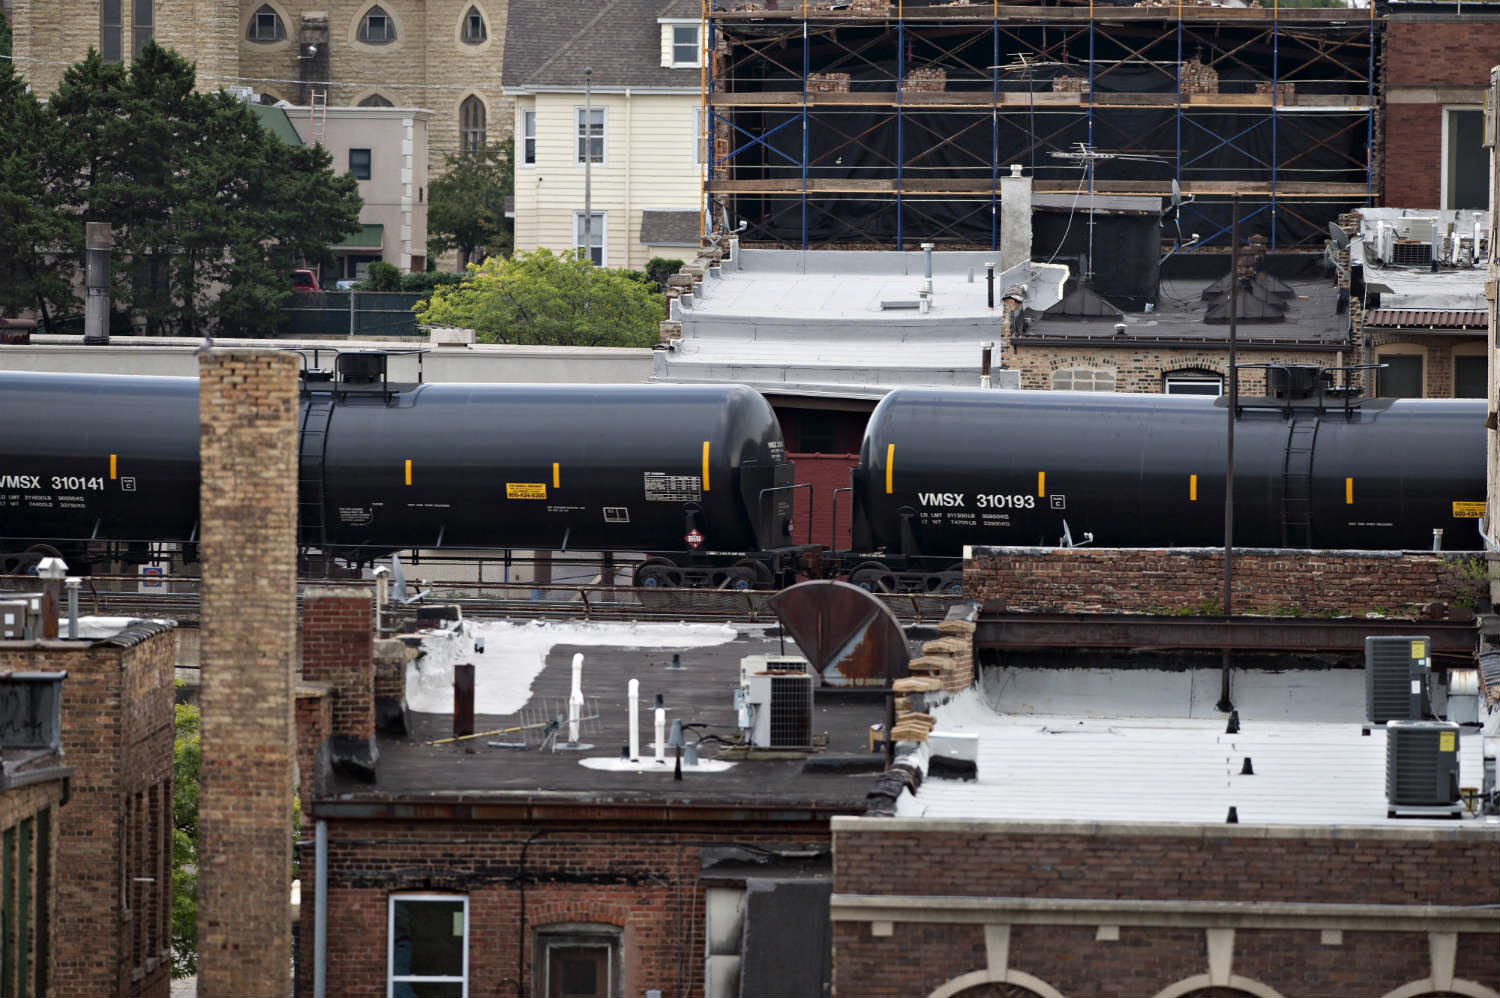 Oil-laden rail cars pass through densely populated towns like Aurora, Illinois